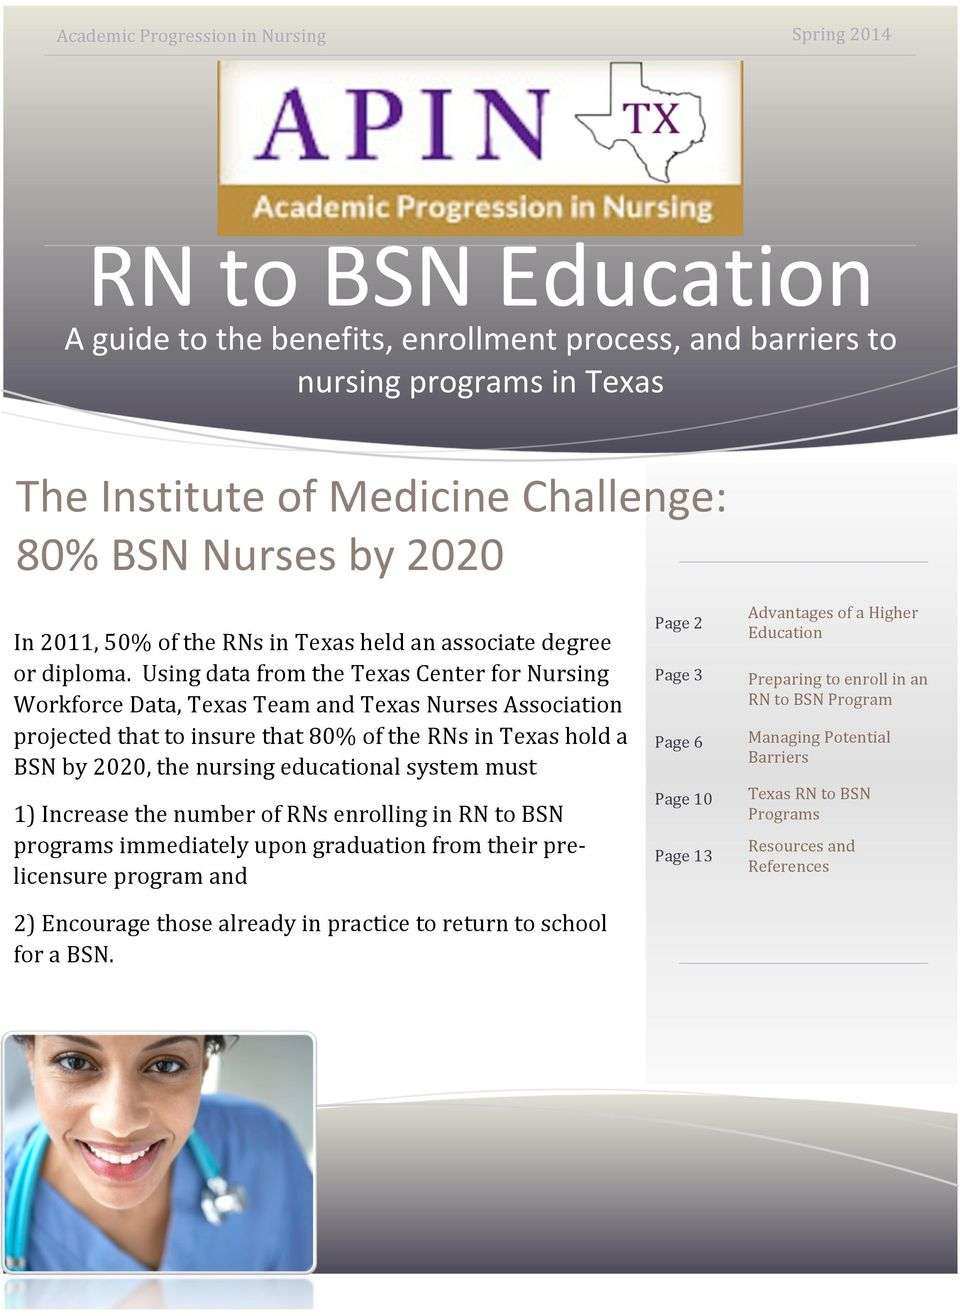 Using data from the Texas Center for Nursing Workforce Data, Texas Team and Texas Nurses Association projected that to insure that 80% of the RNs in Texas hold a BSN by 2020, the nursing educational